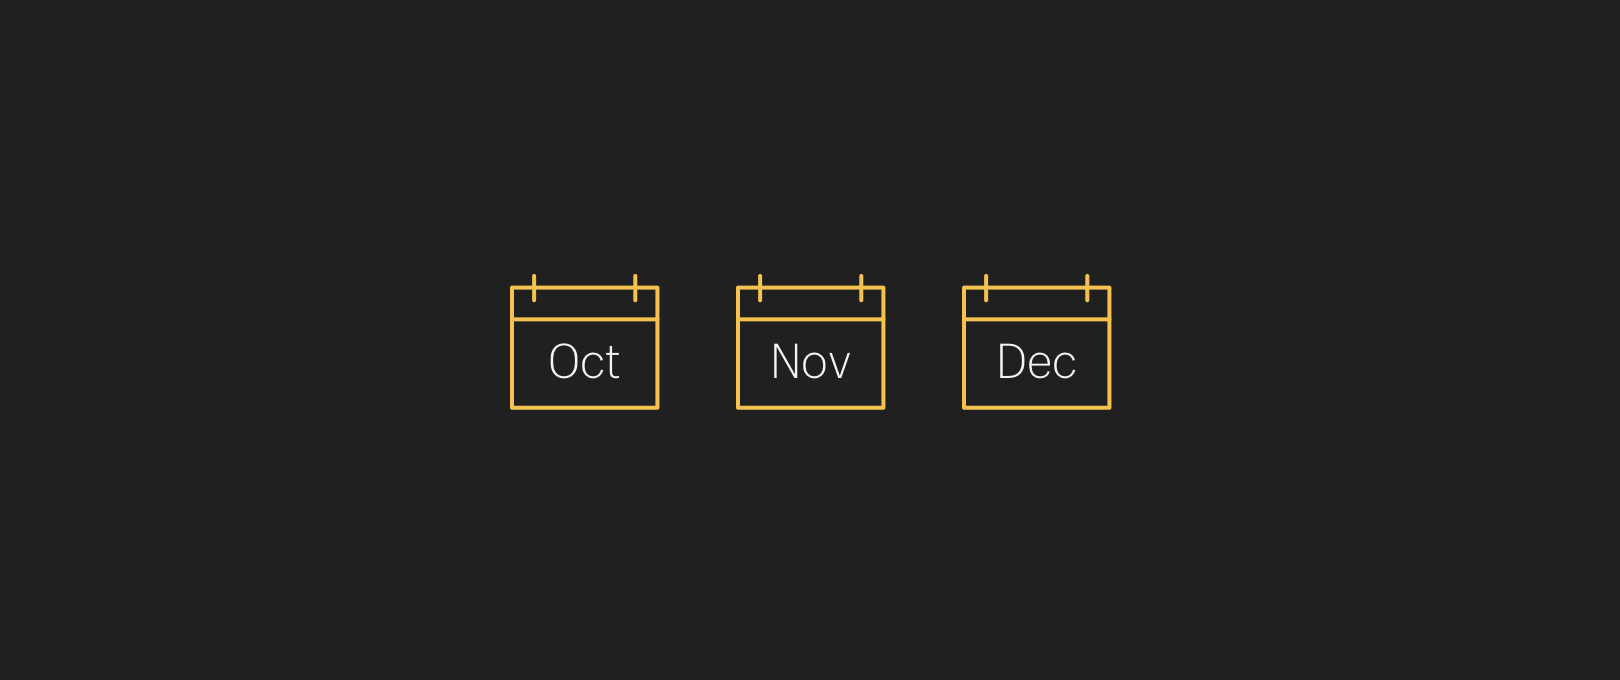 Marketing Calendars for 2018's Holidays: Ecommerce, Social & Sales